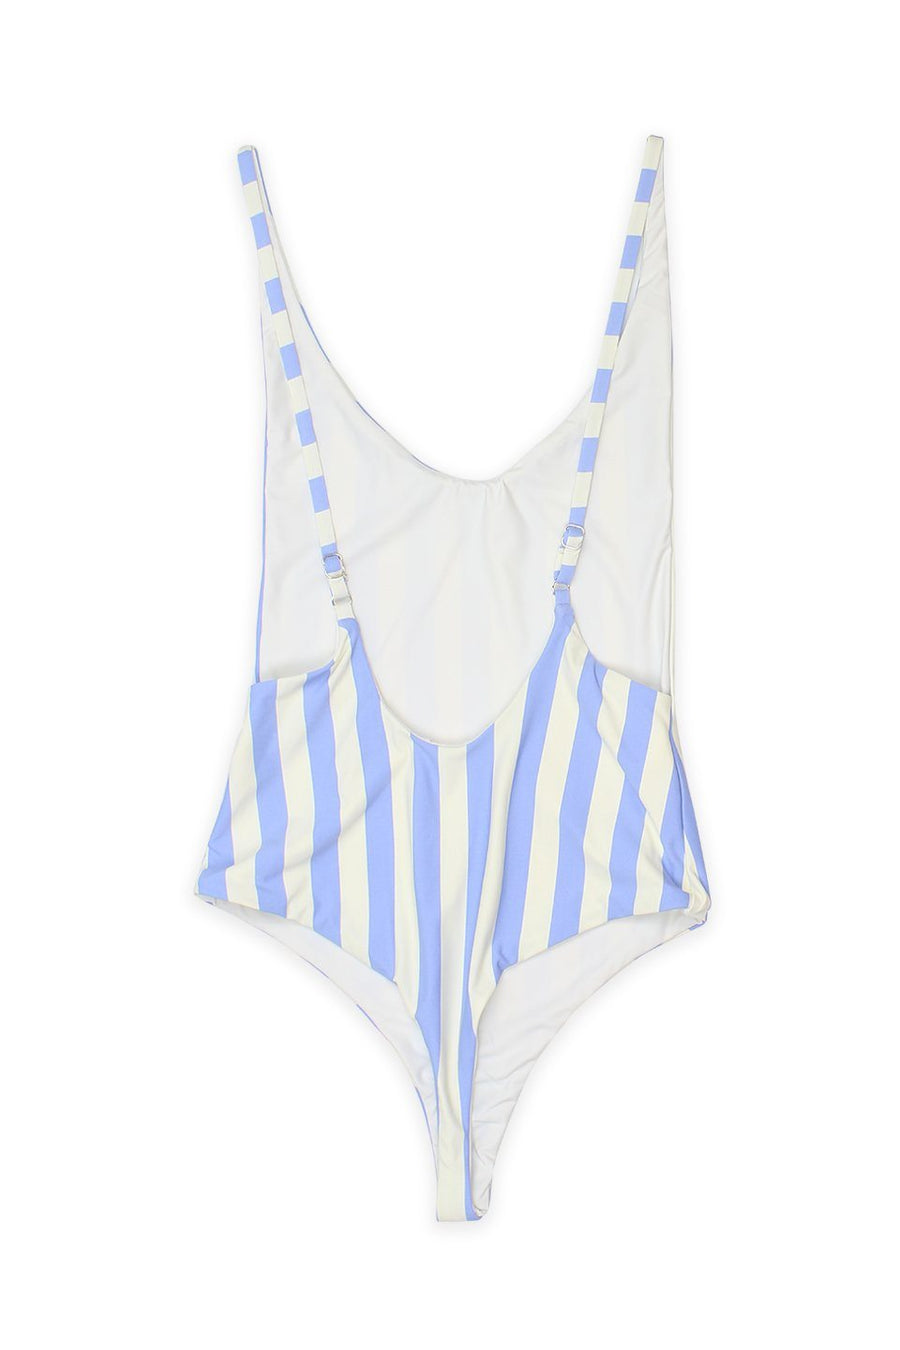 LOW BACK THONG ONE PIECE - SKY BEACH STRIPESFront View